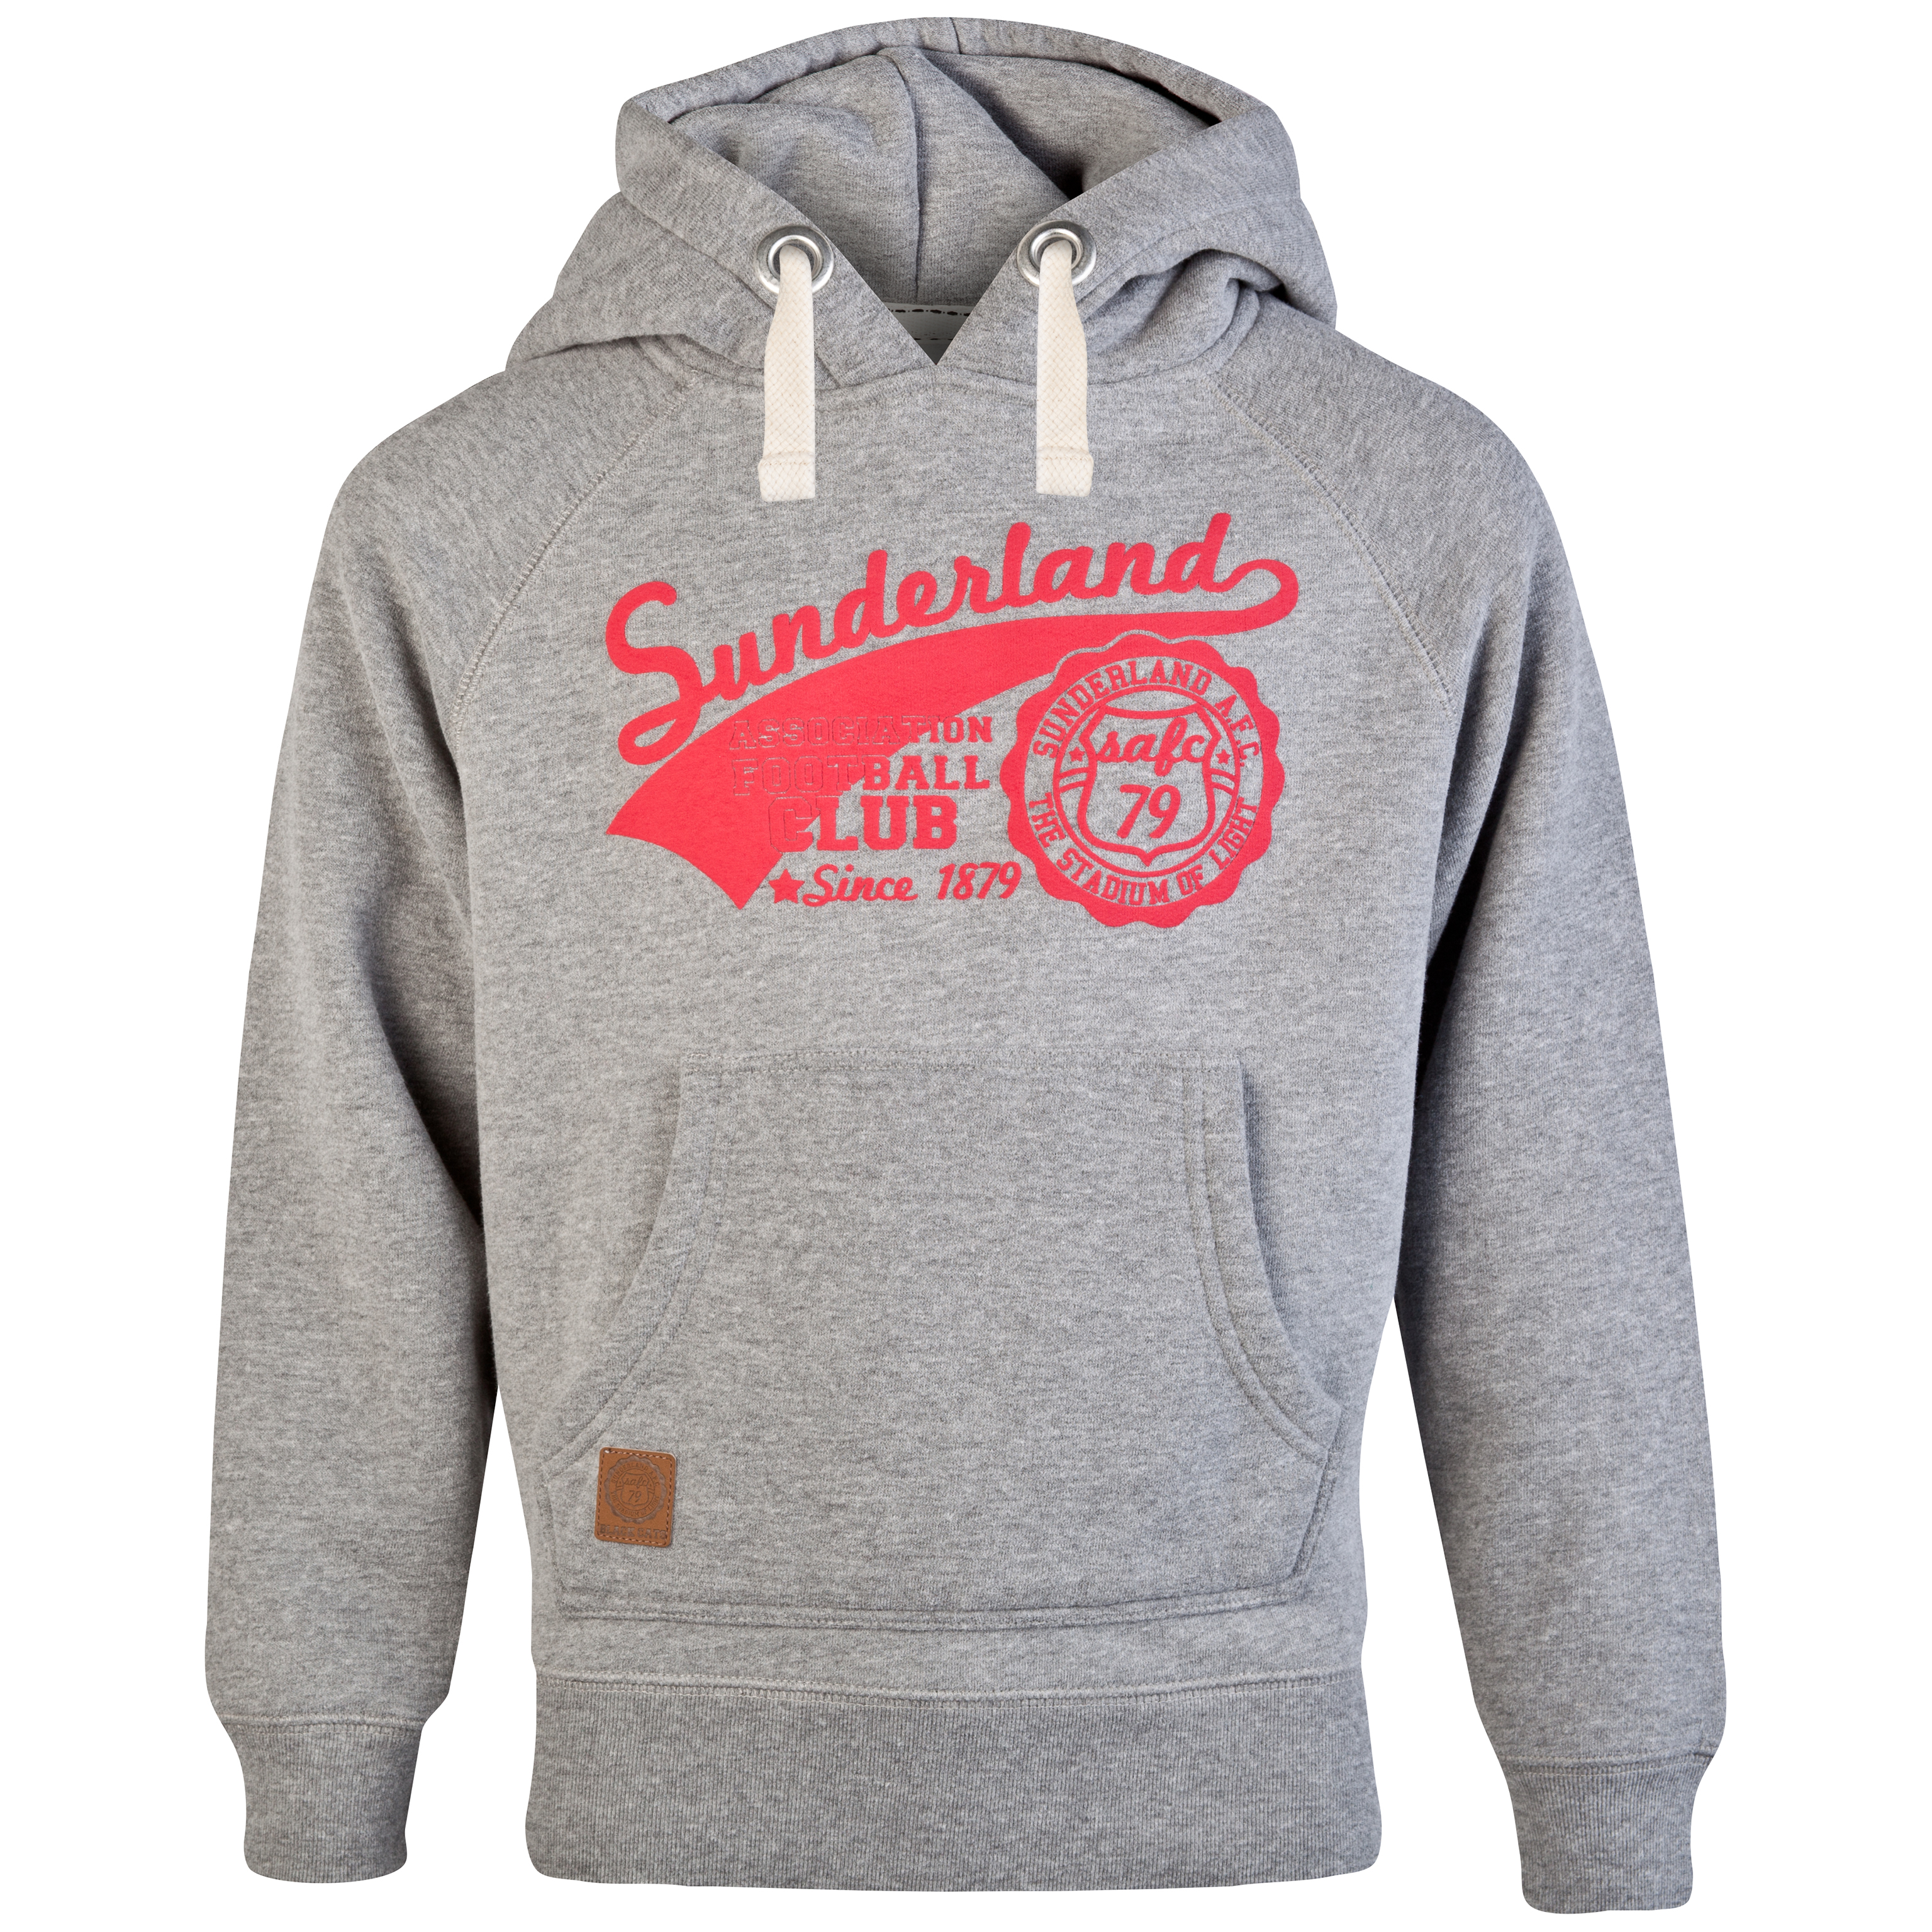 Sunderland Hampshire Hoodie - Grey Marl - Older Boys